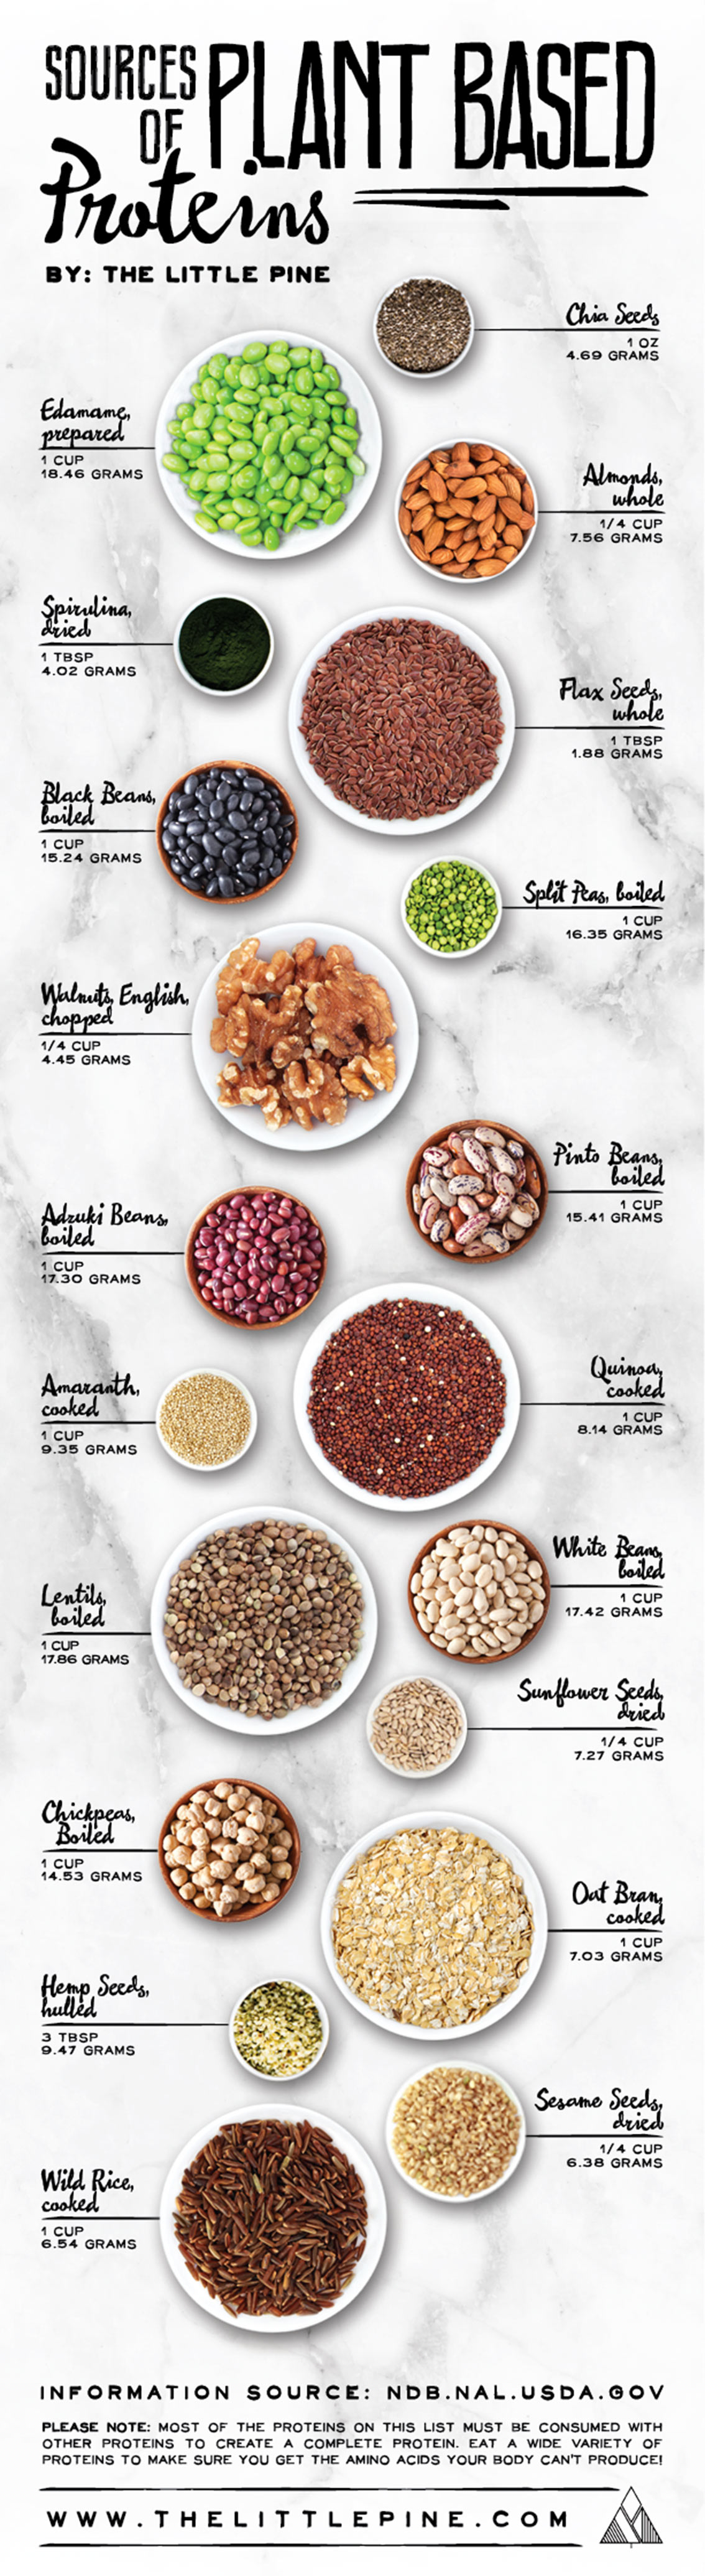 Best Sources of Plant Based Protein - Vegan Infographic